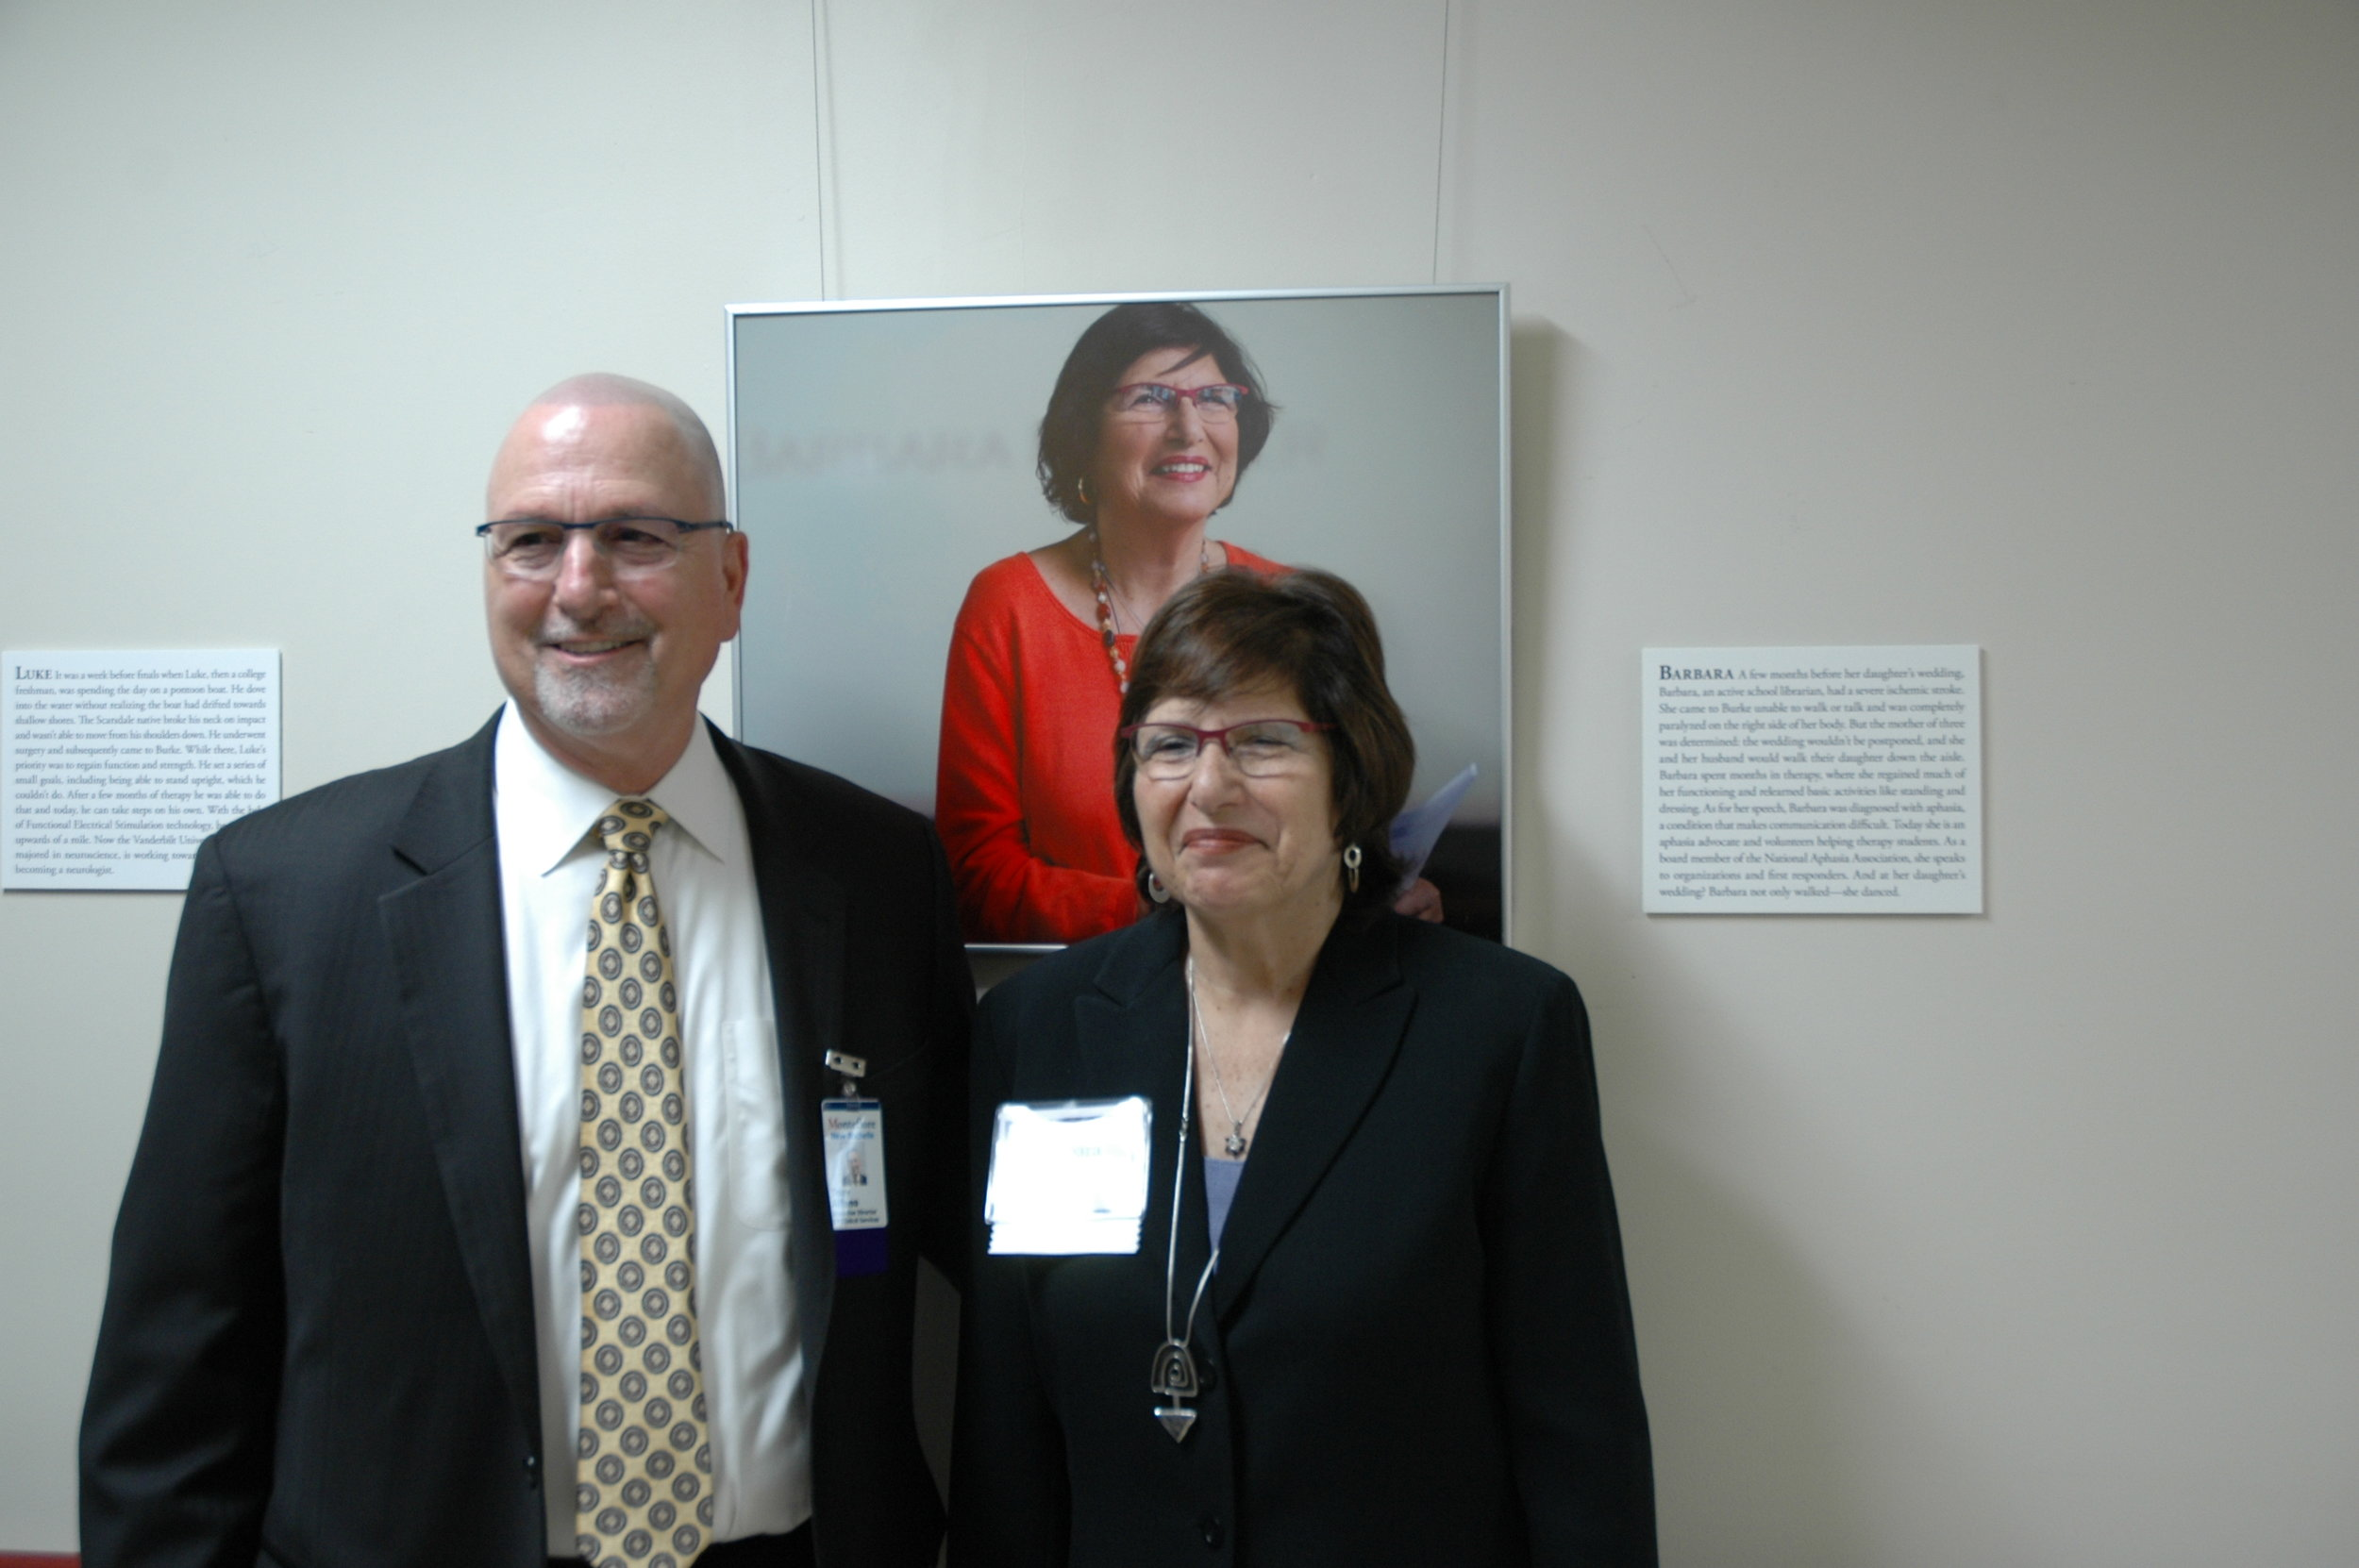 Anthony Alfano (left), Vice President and Executive Director at Montefiore New Rochelle, standing with Barbara (right), Faces of Burke participant, in front of her portrait